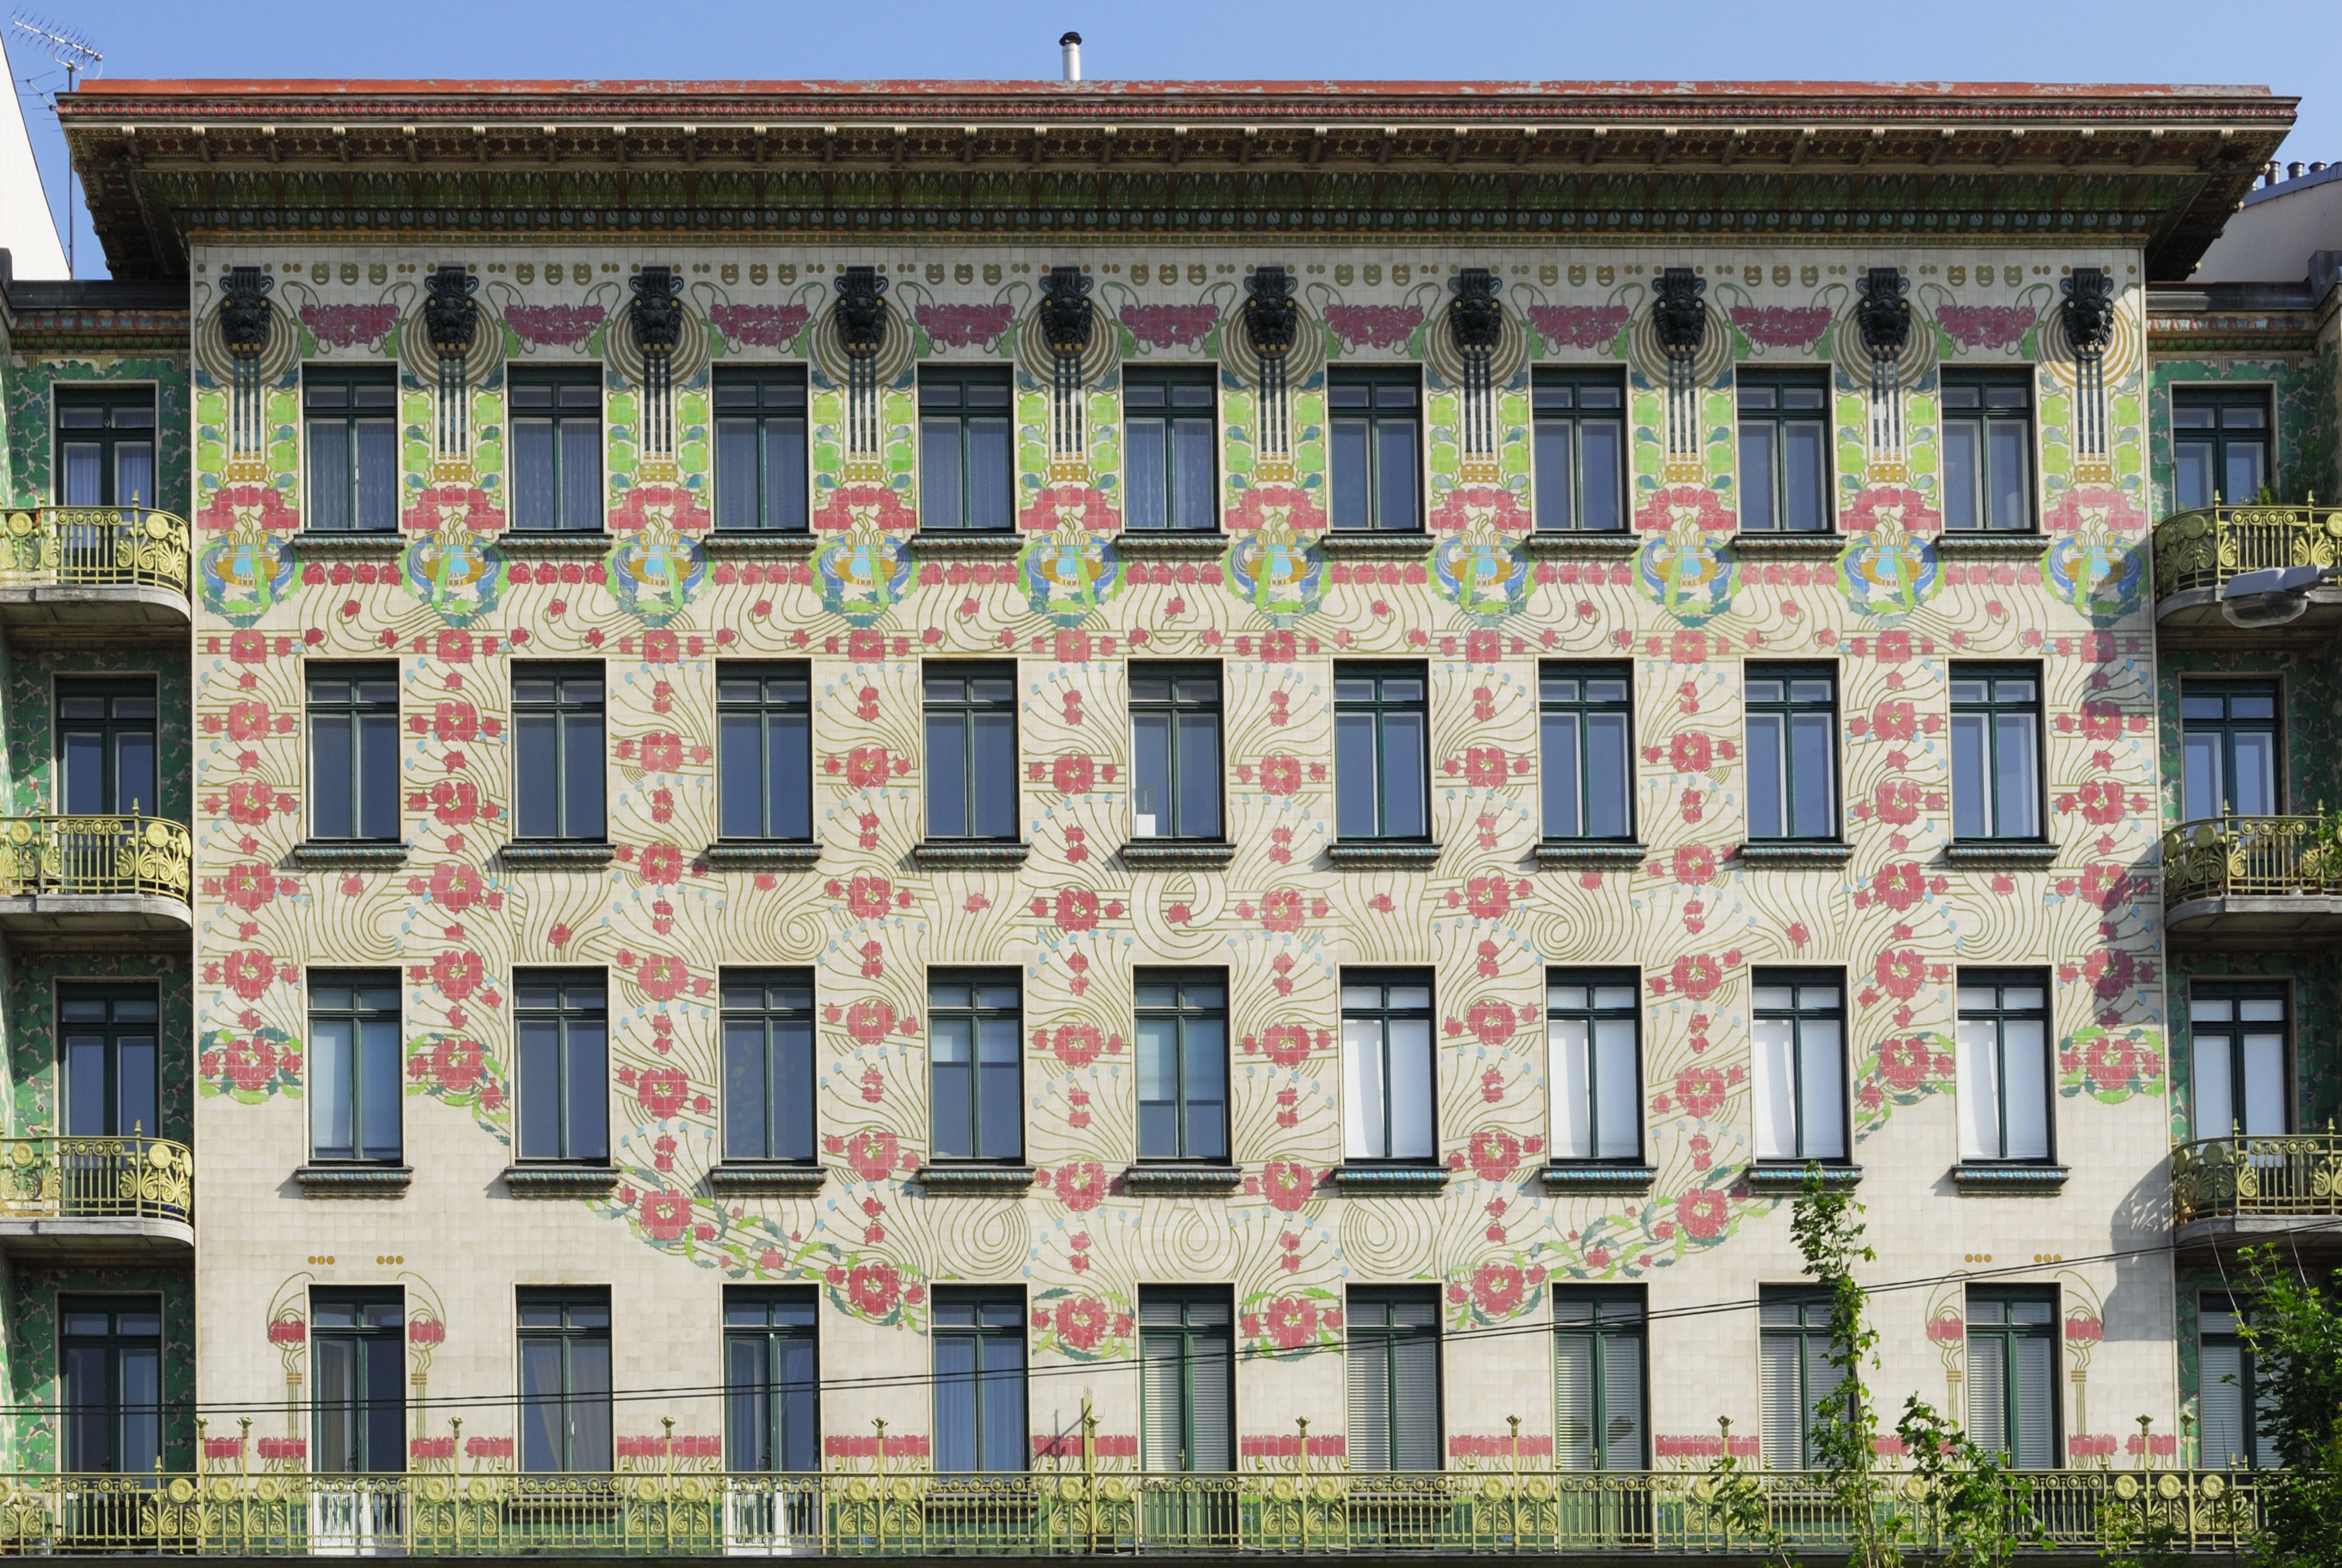 Four-story Majolika Haus with ceramic flowered facade designed by Otto  Wagner, Vienna,